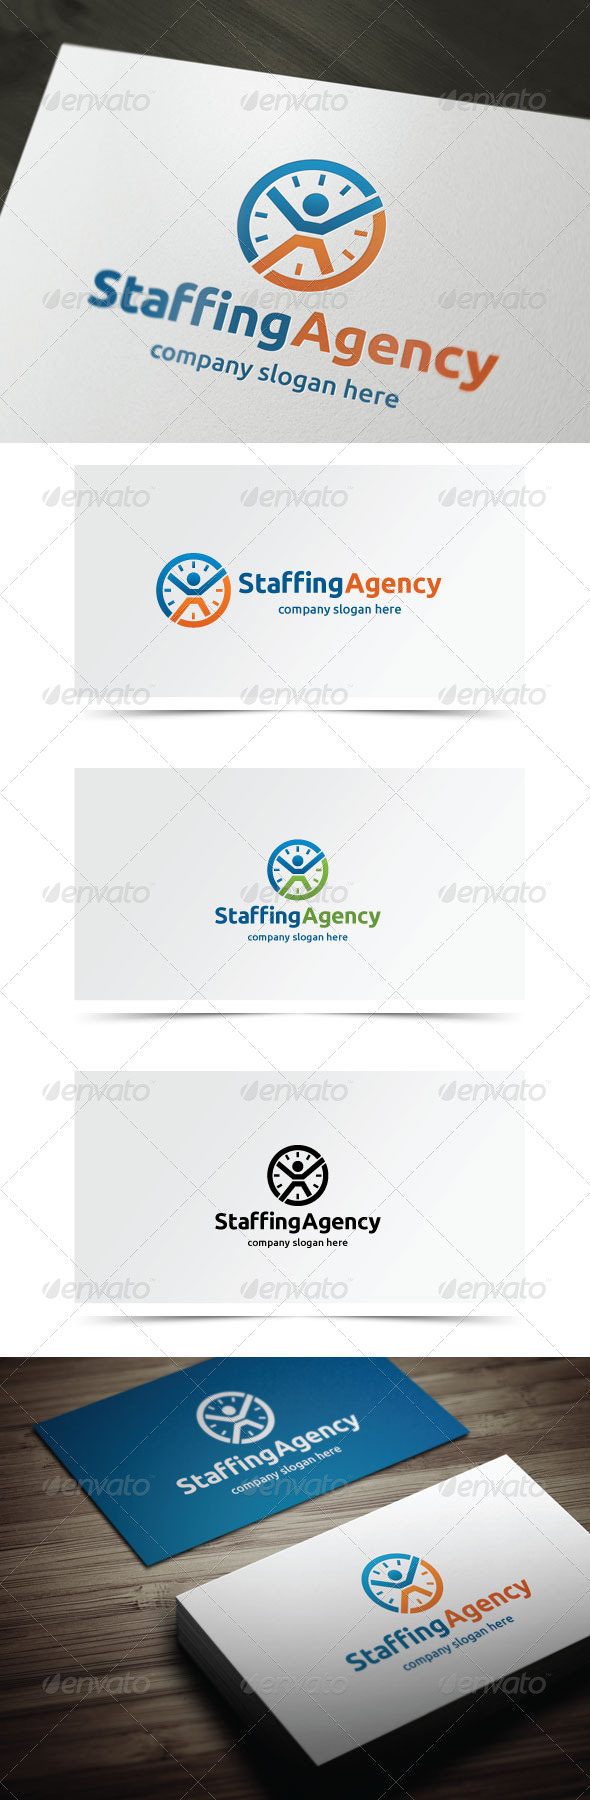 GraphicRiver Staffing Agency 6020993